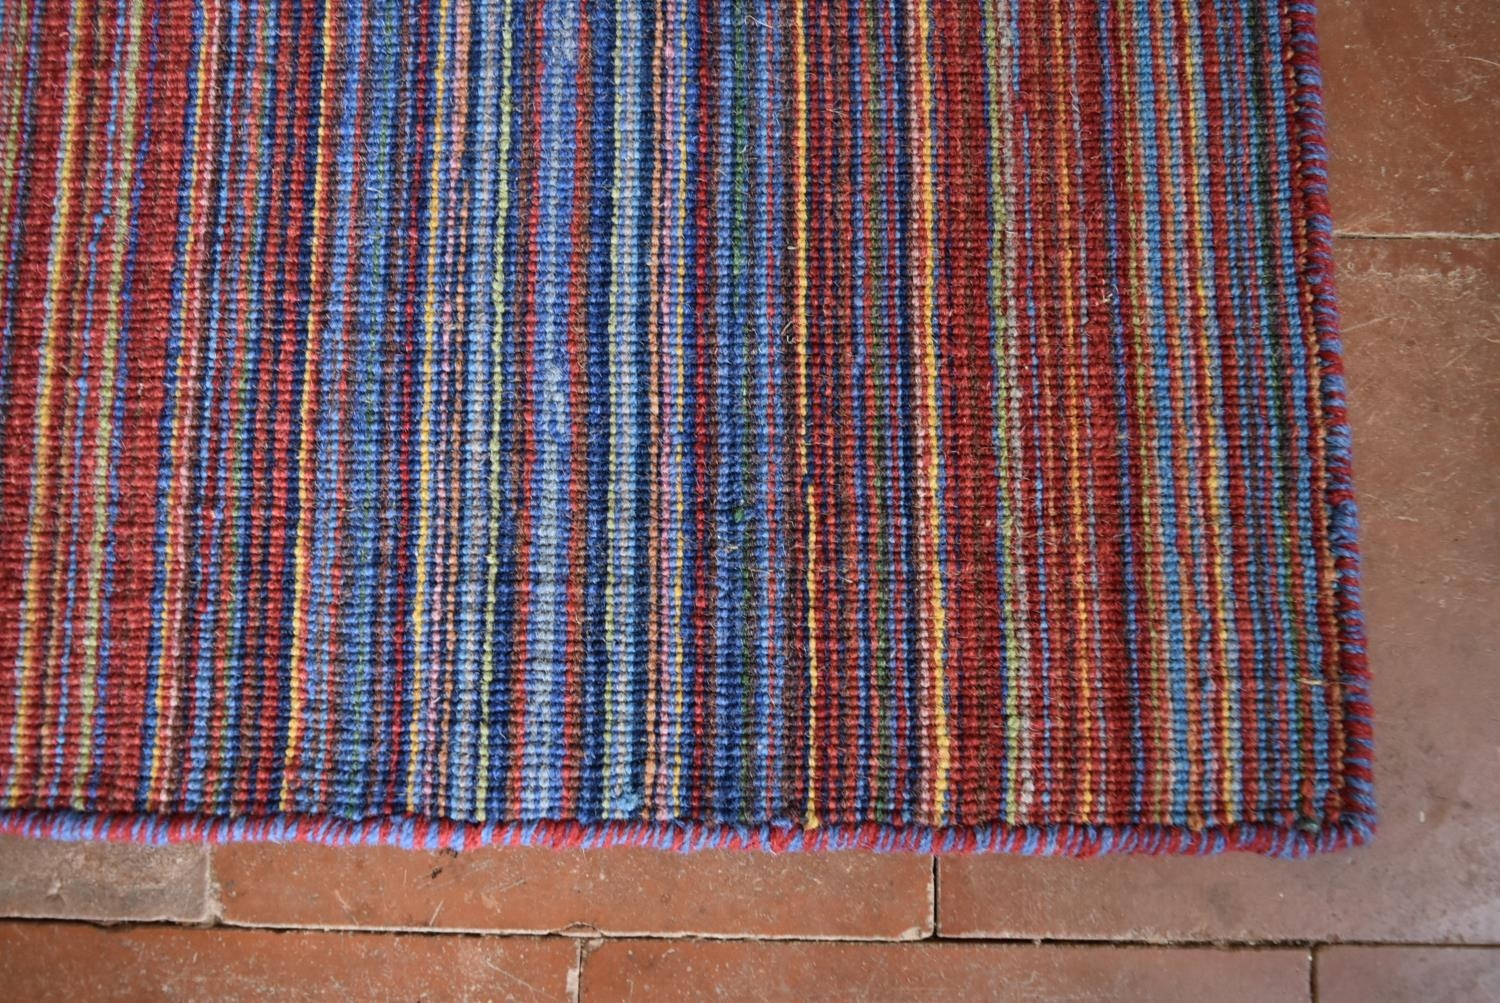 A long modern Kilim runner with bands in various hues of red and blue. L.400xW.70cm - Image 2 of 3